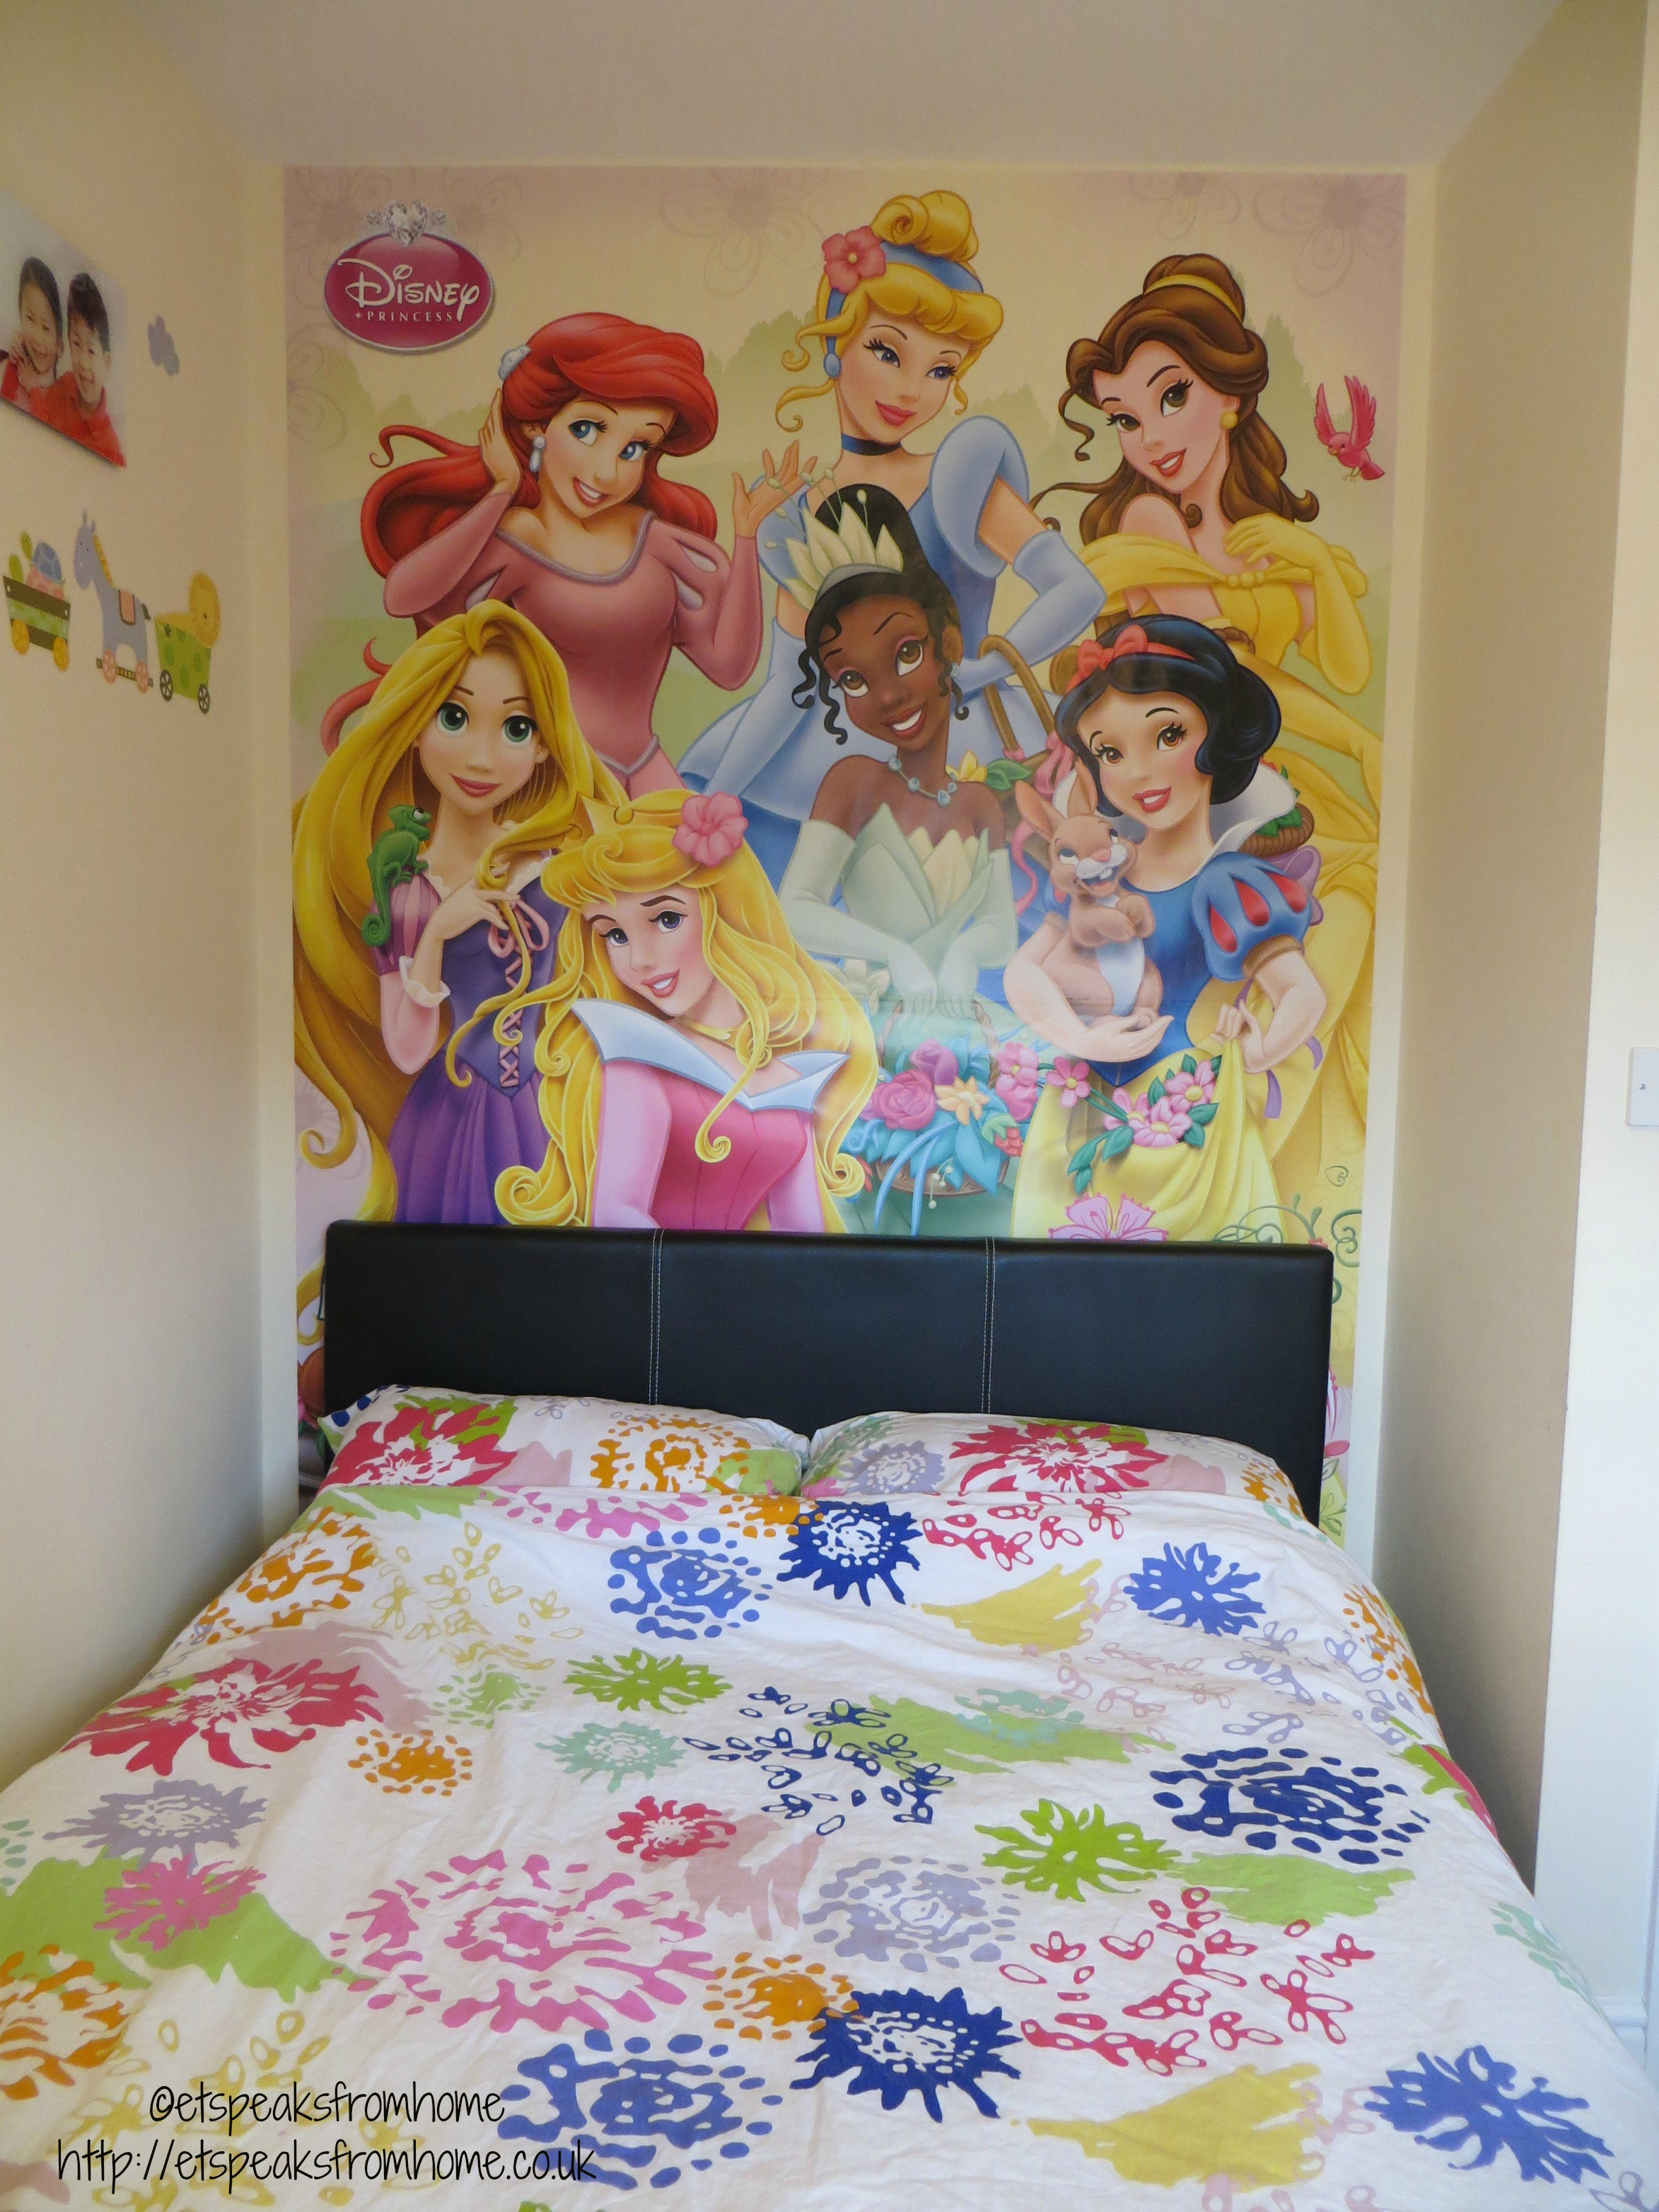 Disney Princess Wallpaper Uk